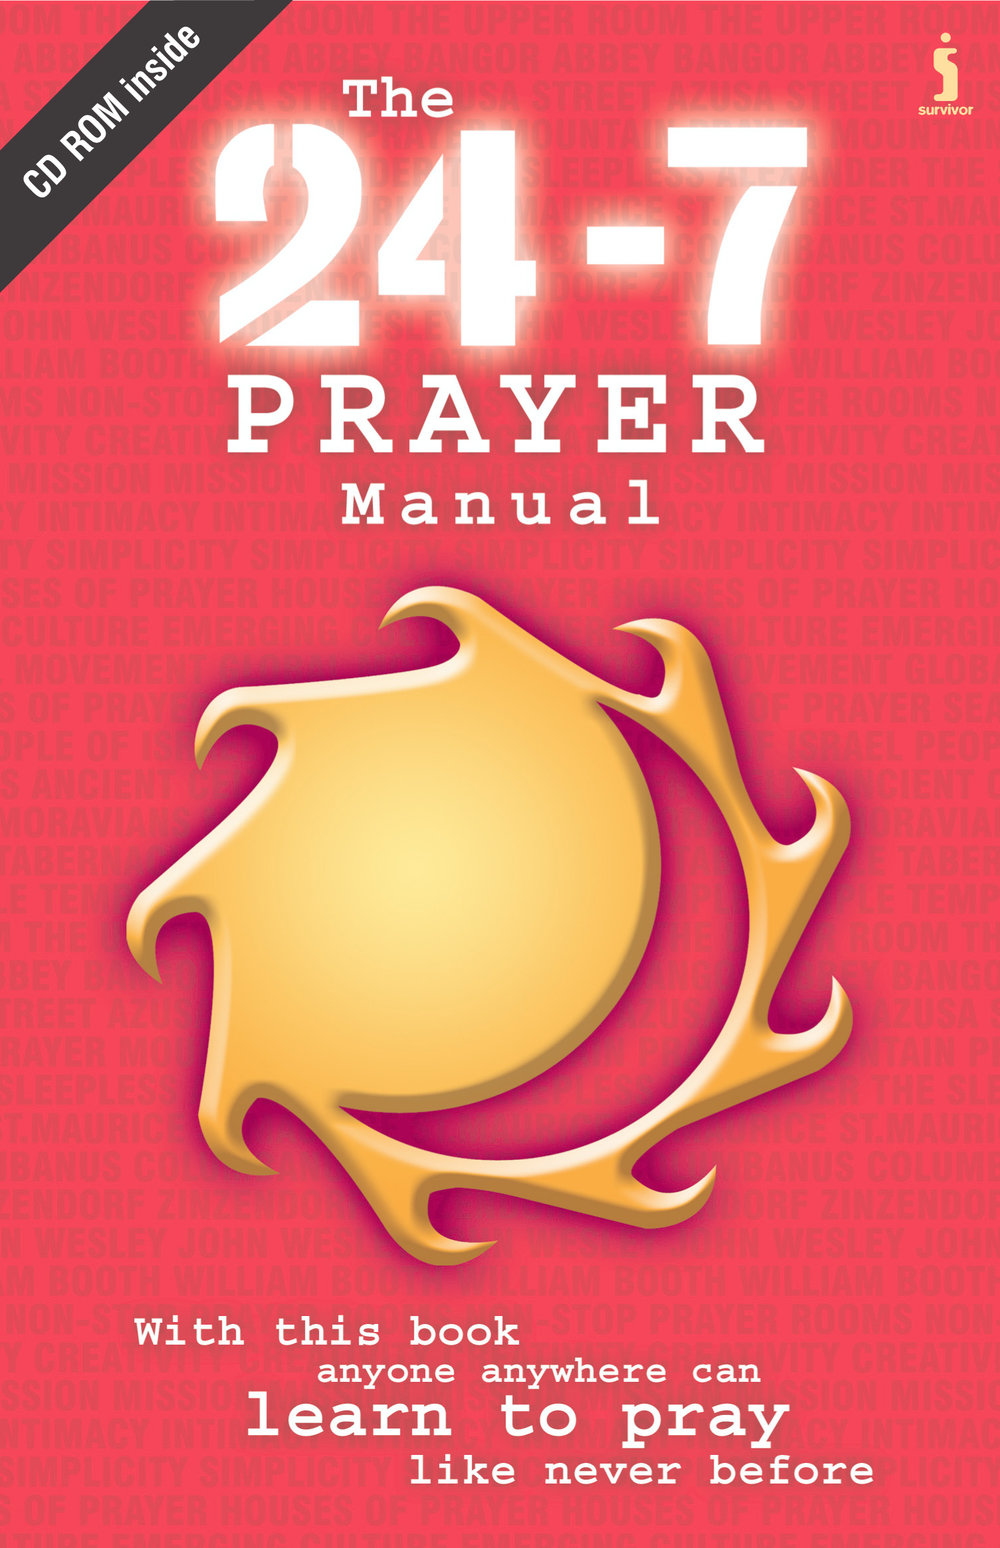 (2003) The 24-7 Prayer Manual